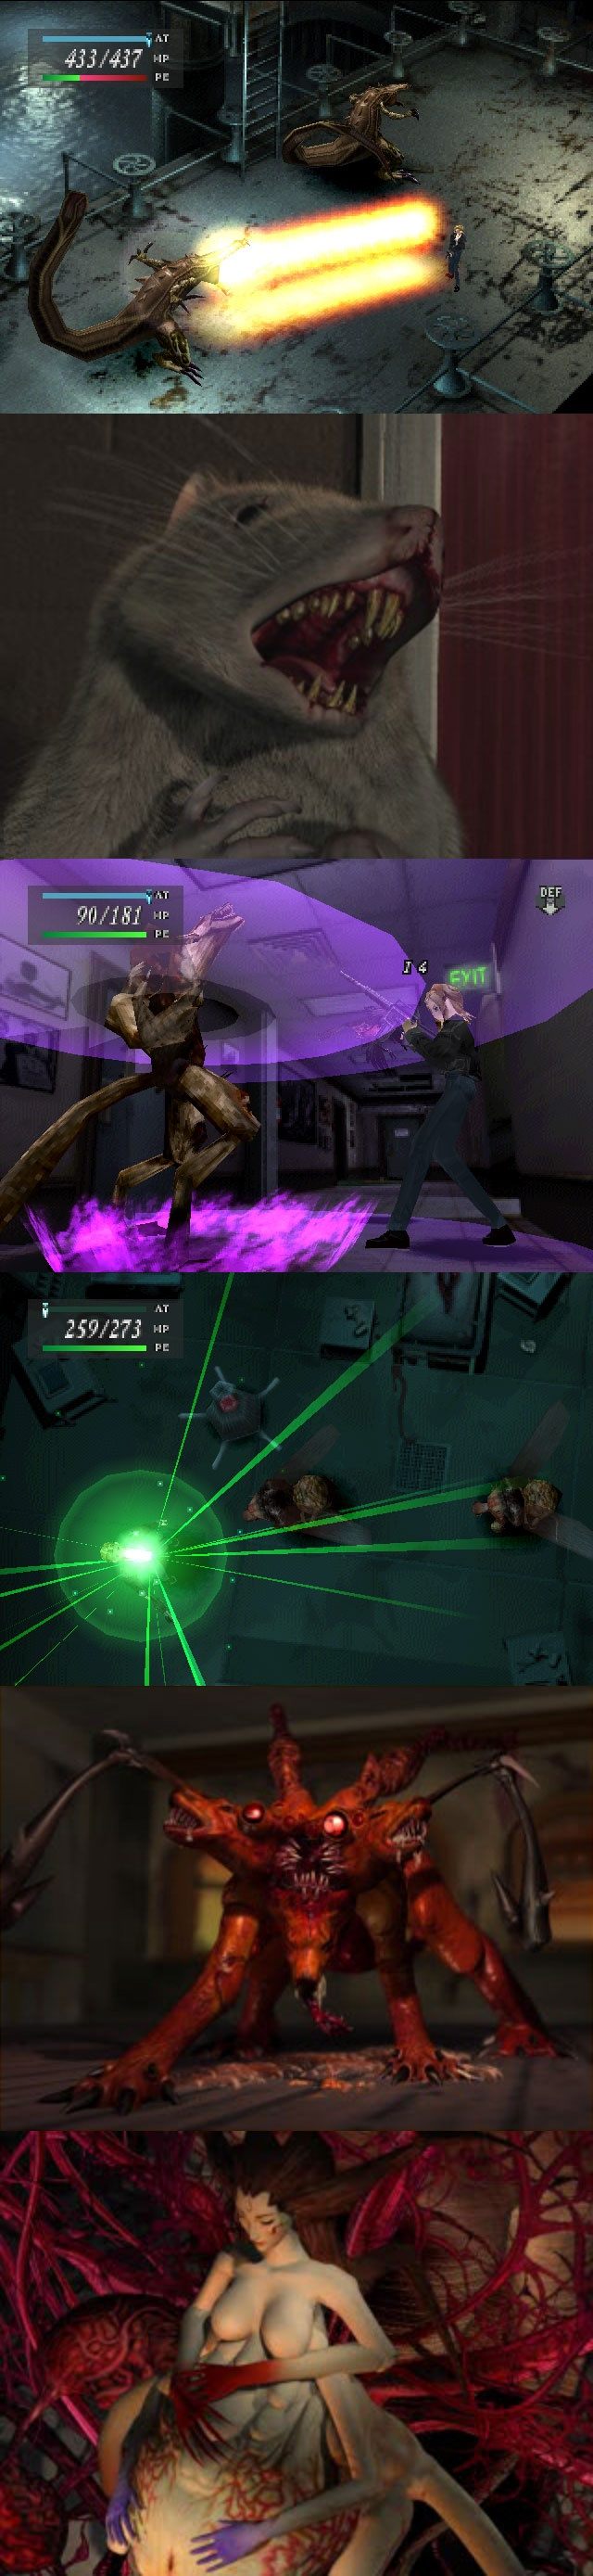 Parasite Eve is such an awesome game! It really is - Jesus Ochoa